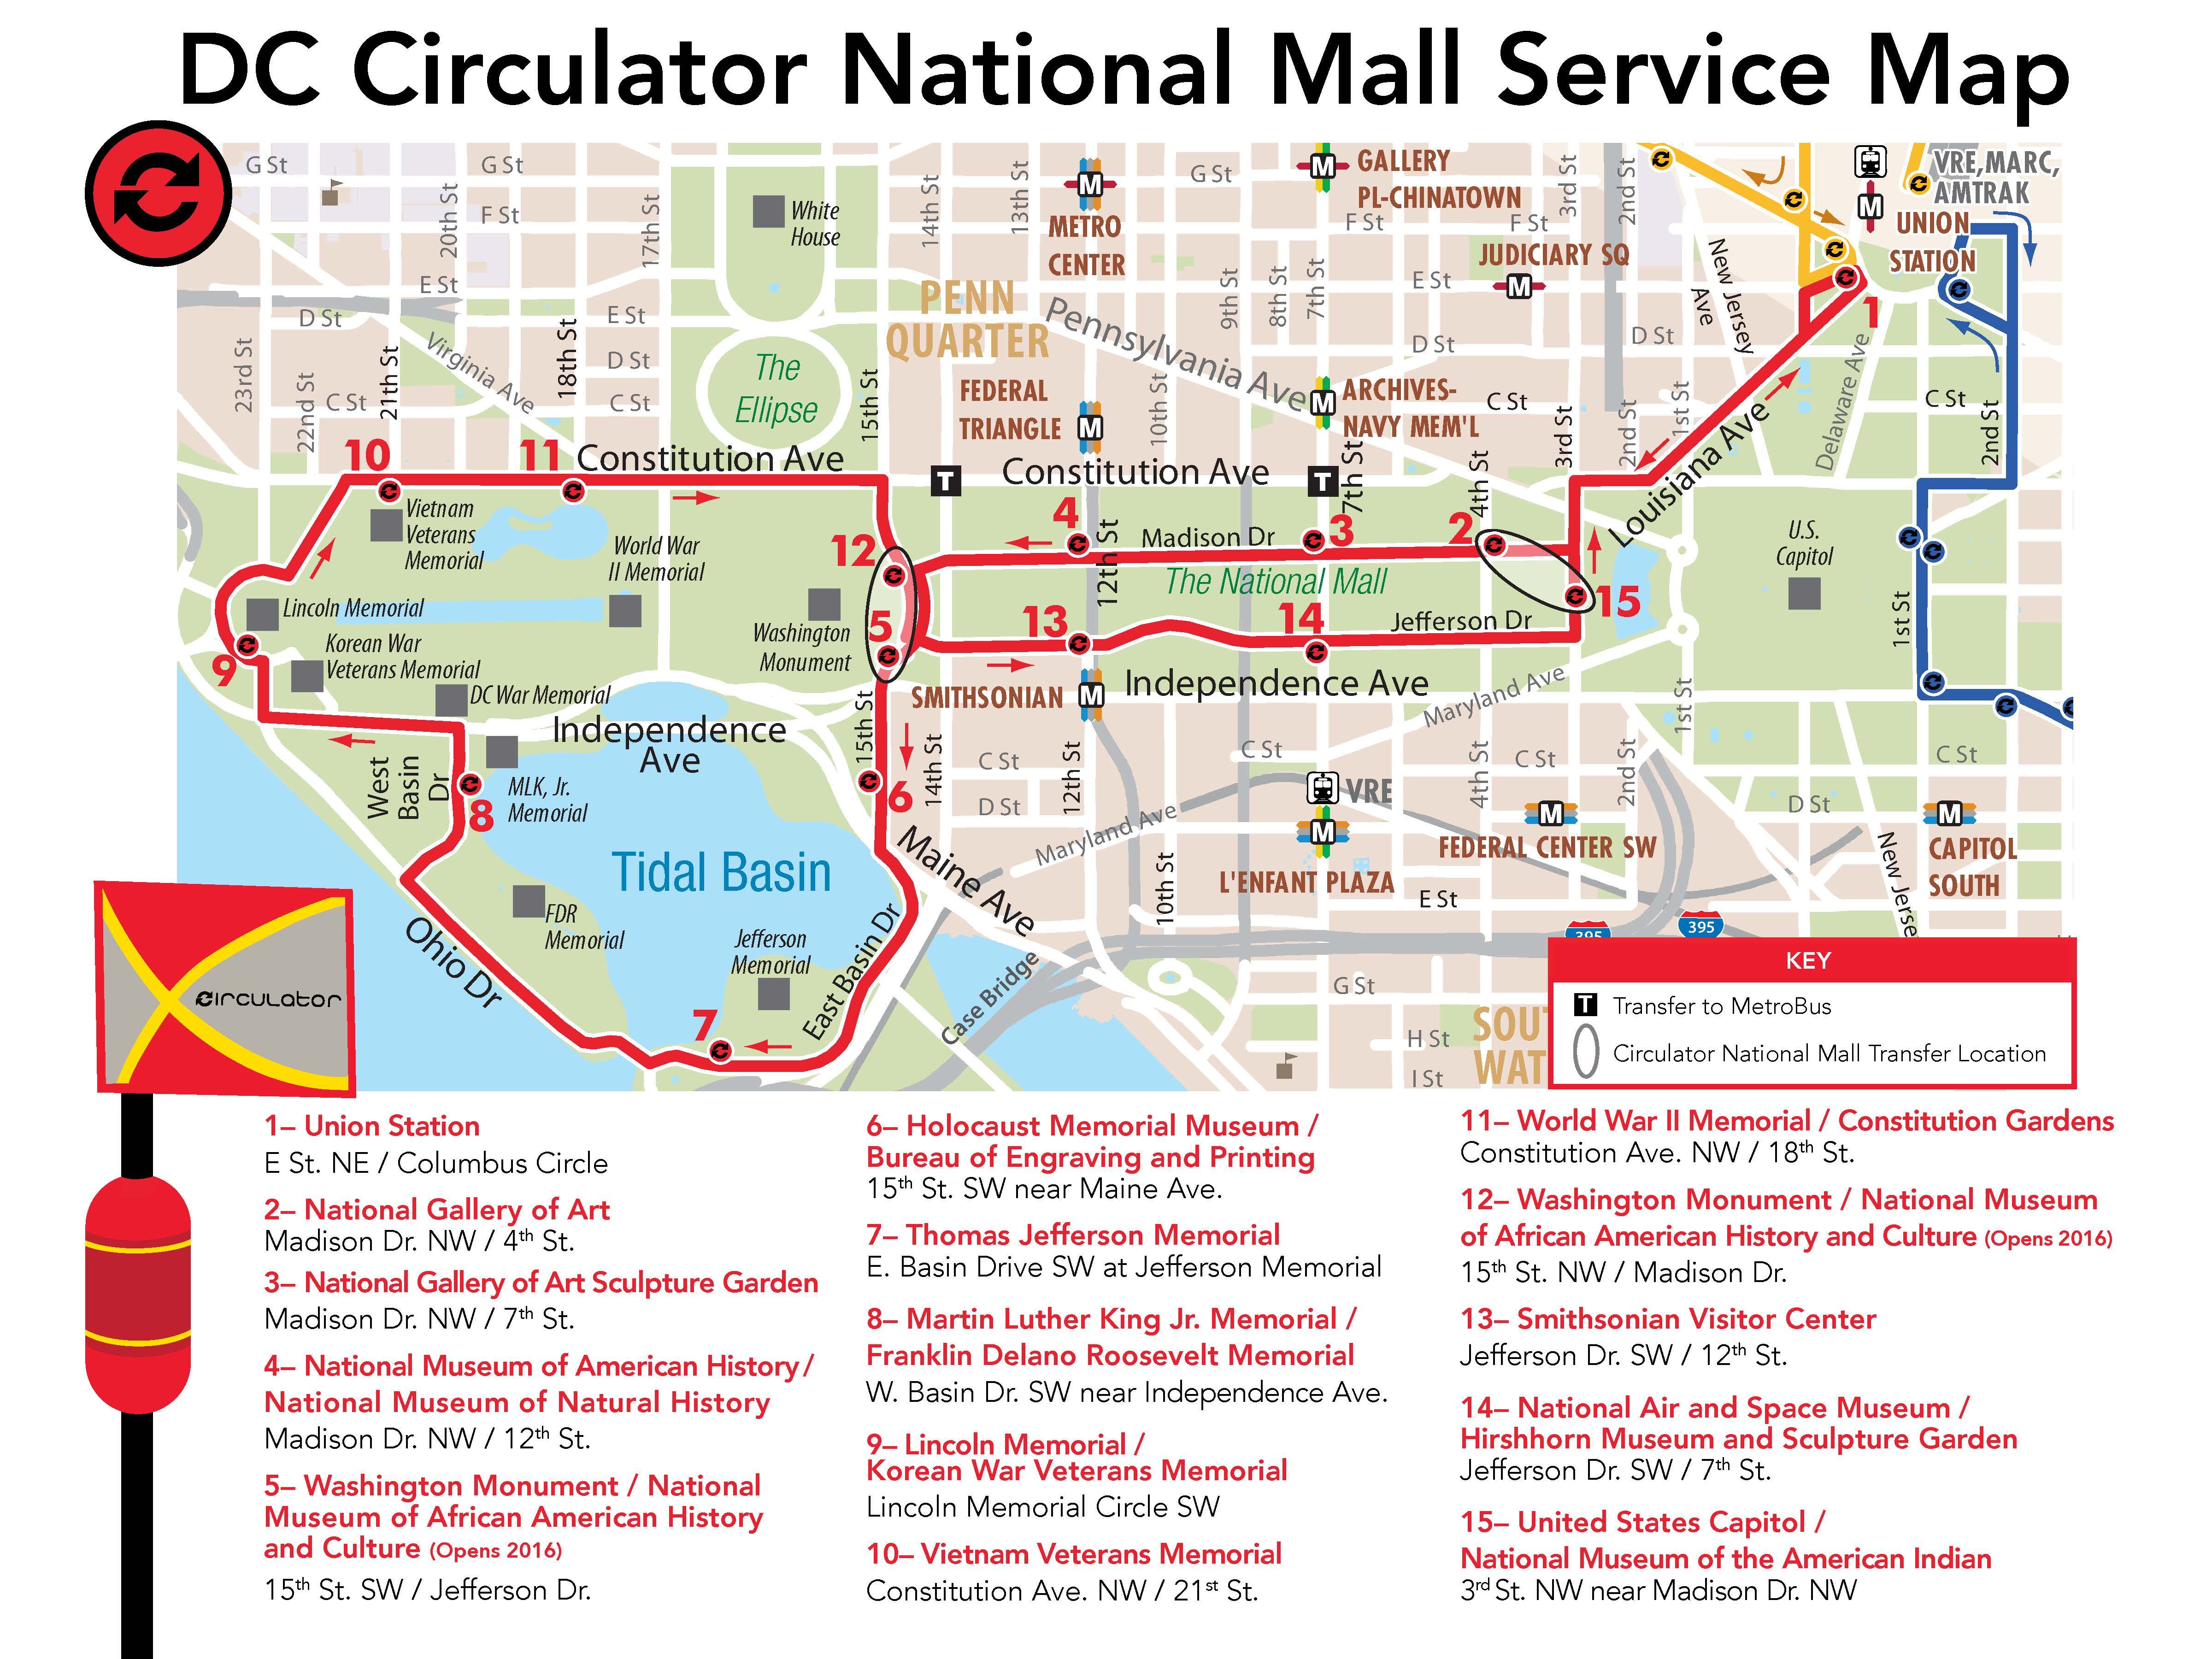 Dc Circulator National Mall Route Download Free Circuit Series 10 Introducing The